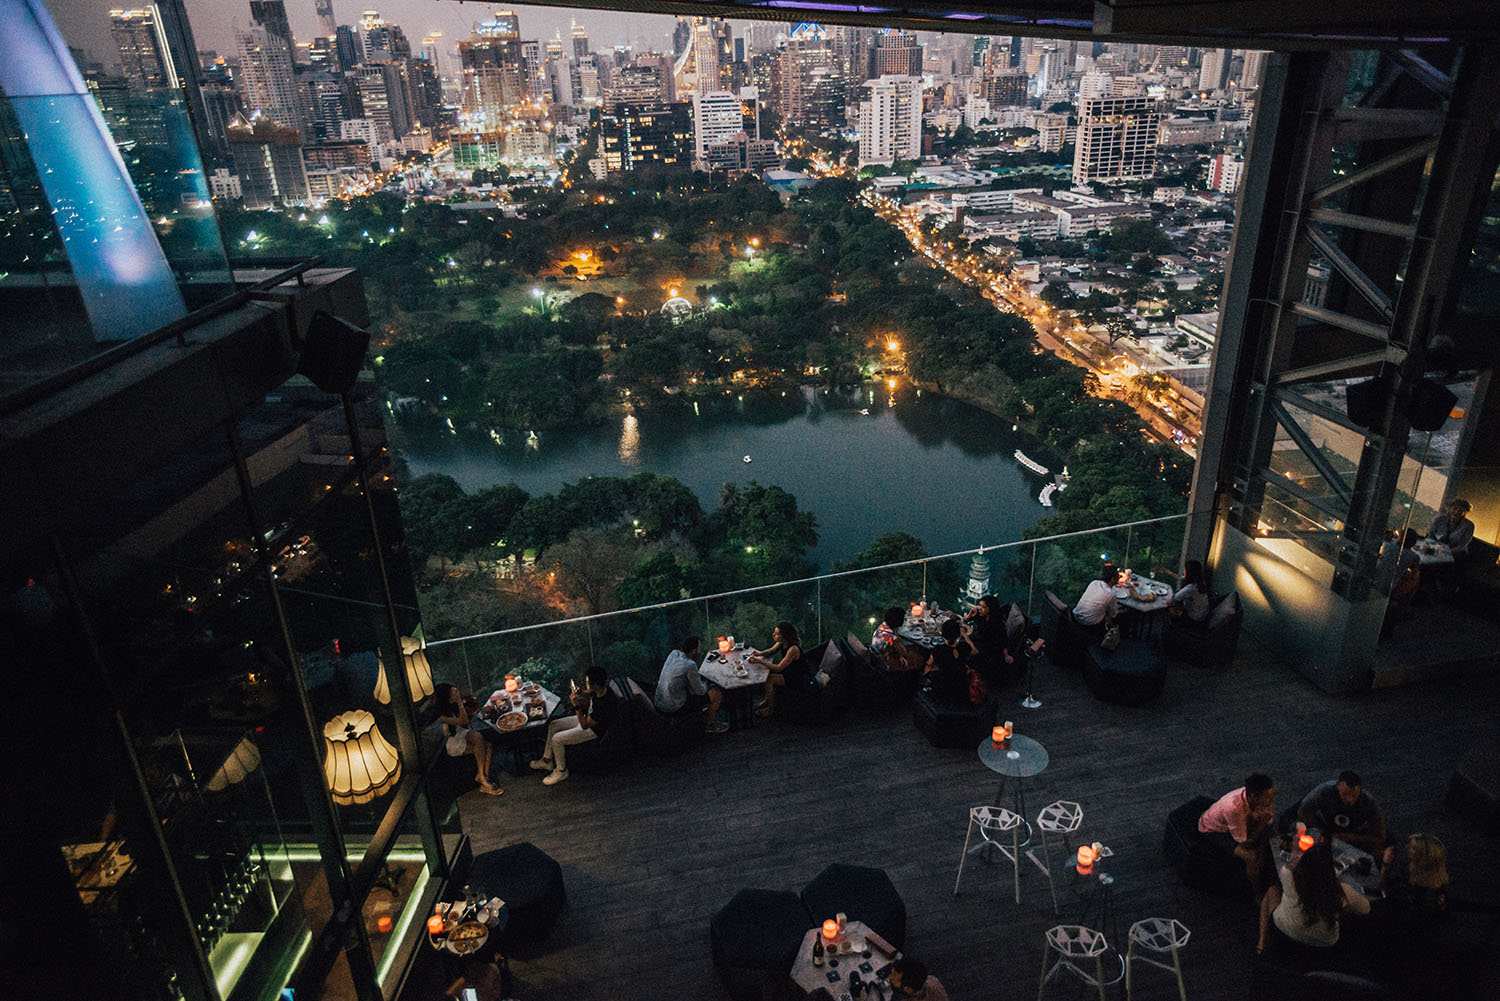 Park Society, So Sofitel - Rooftop Dining in Bangkok